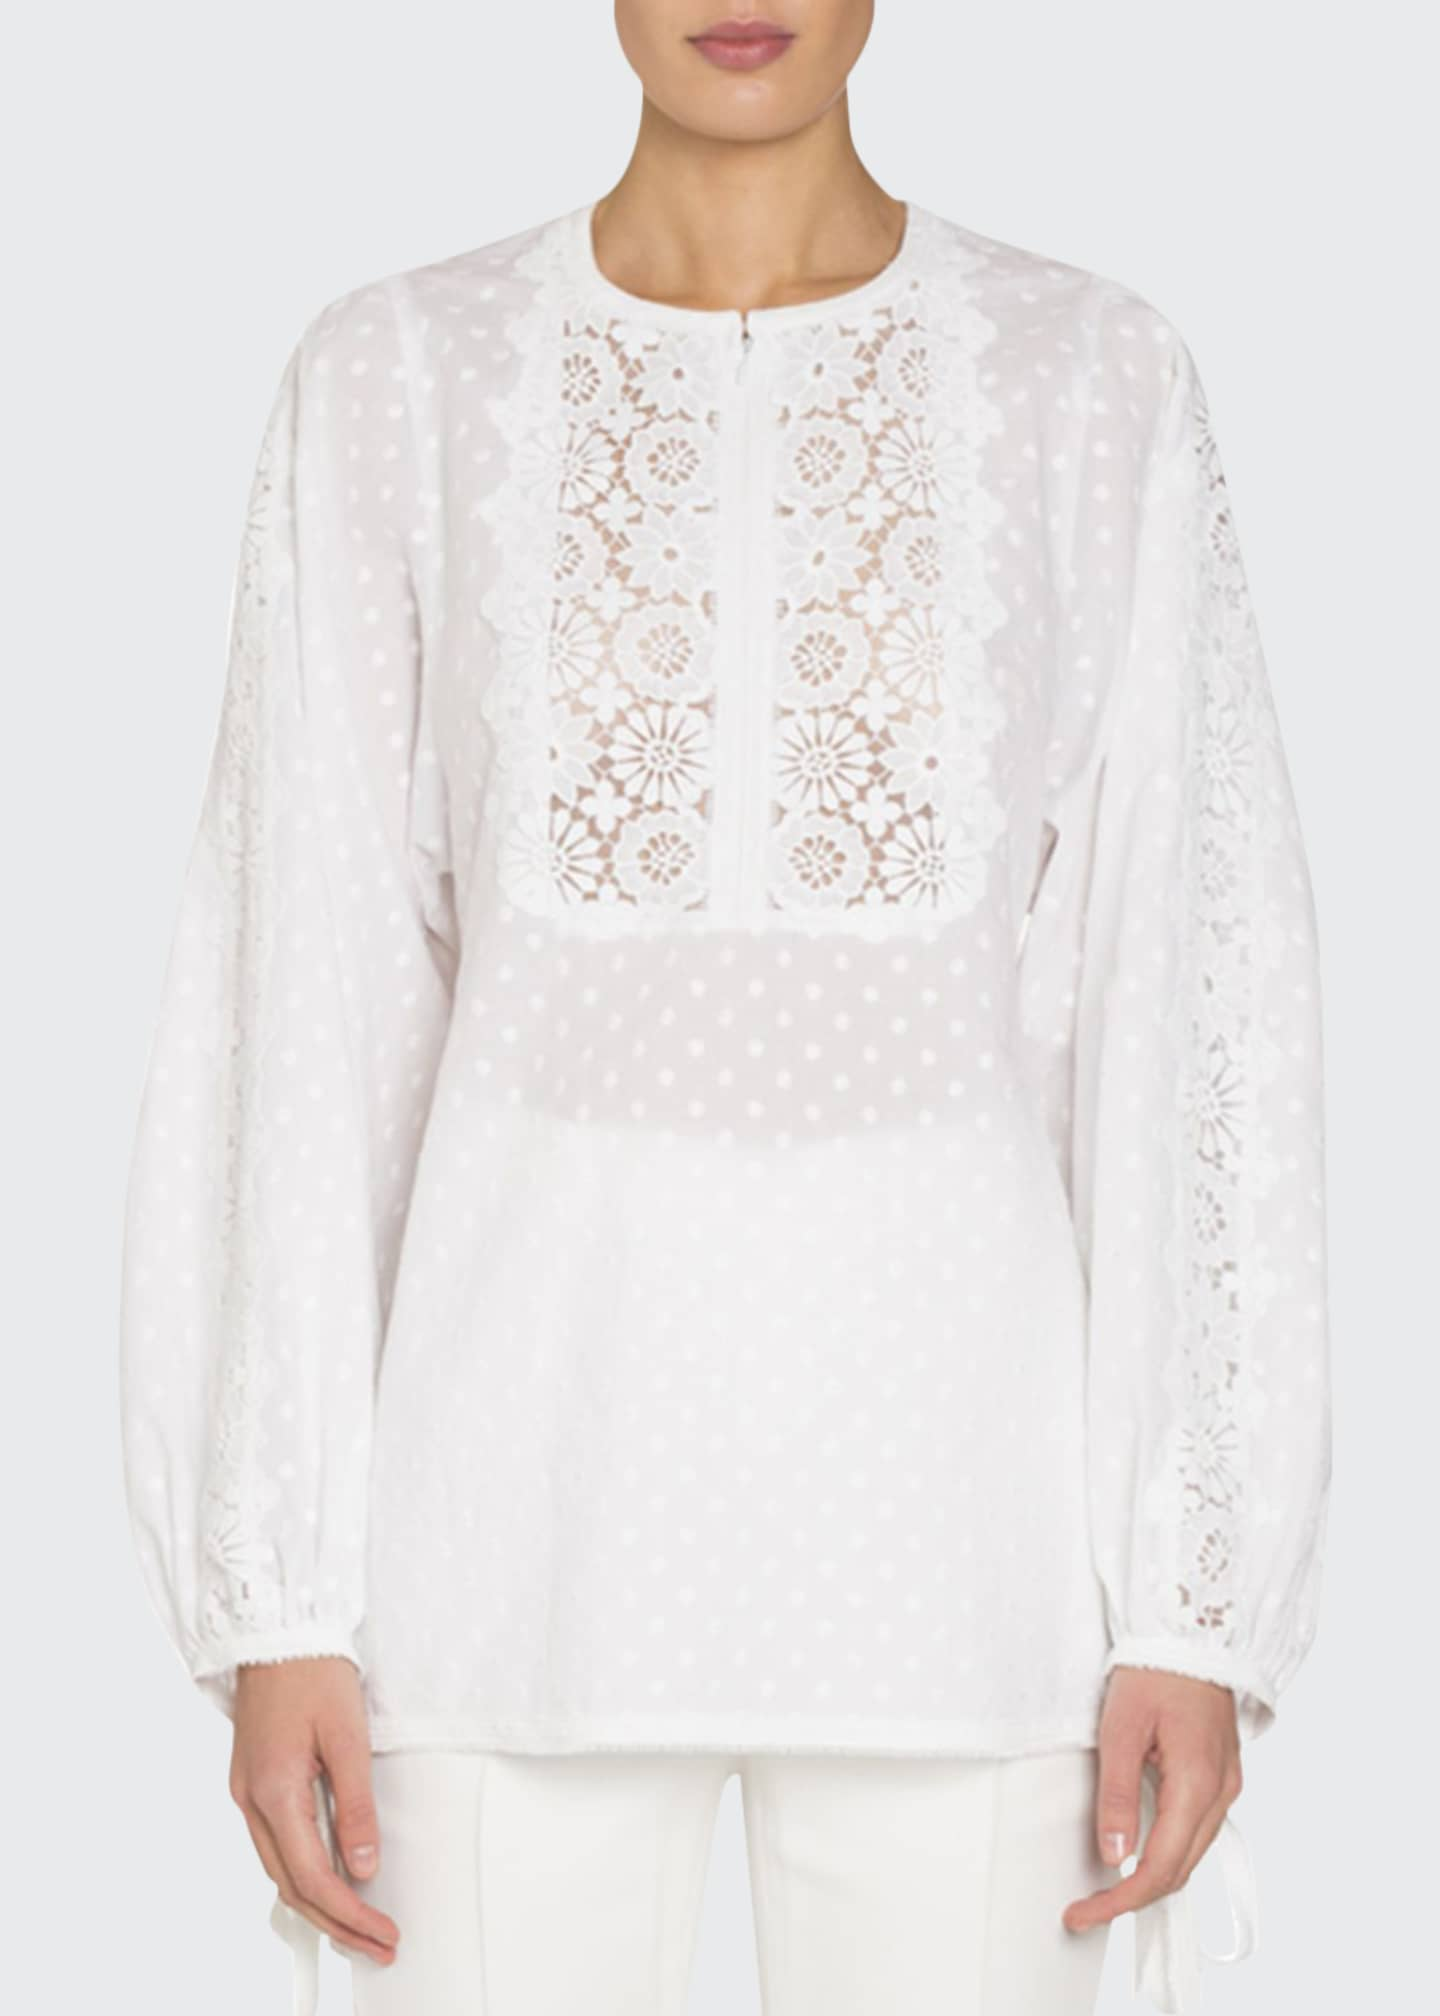 Andrew Gn Dotted Long-Sleeve Blouse with Eyelet Lace